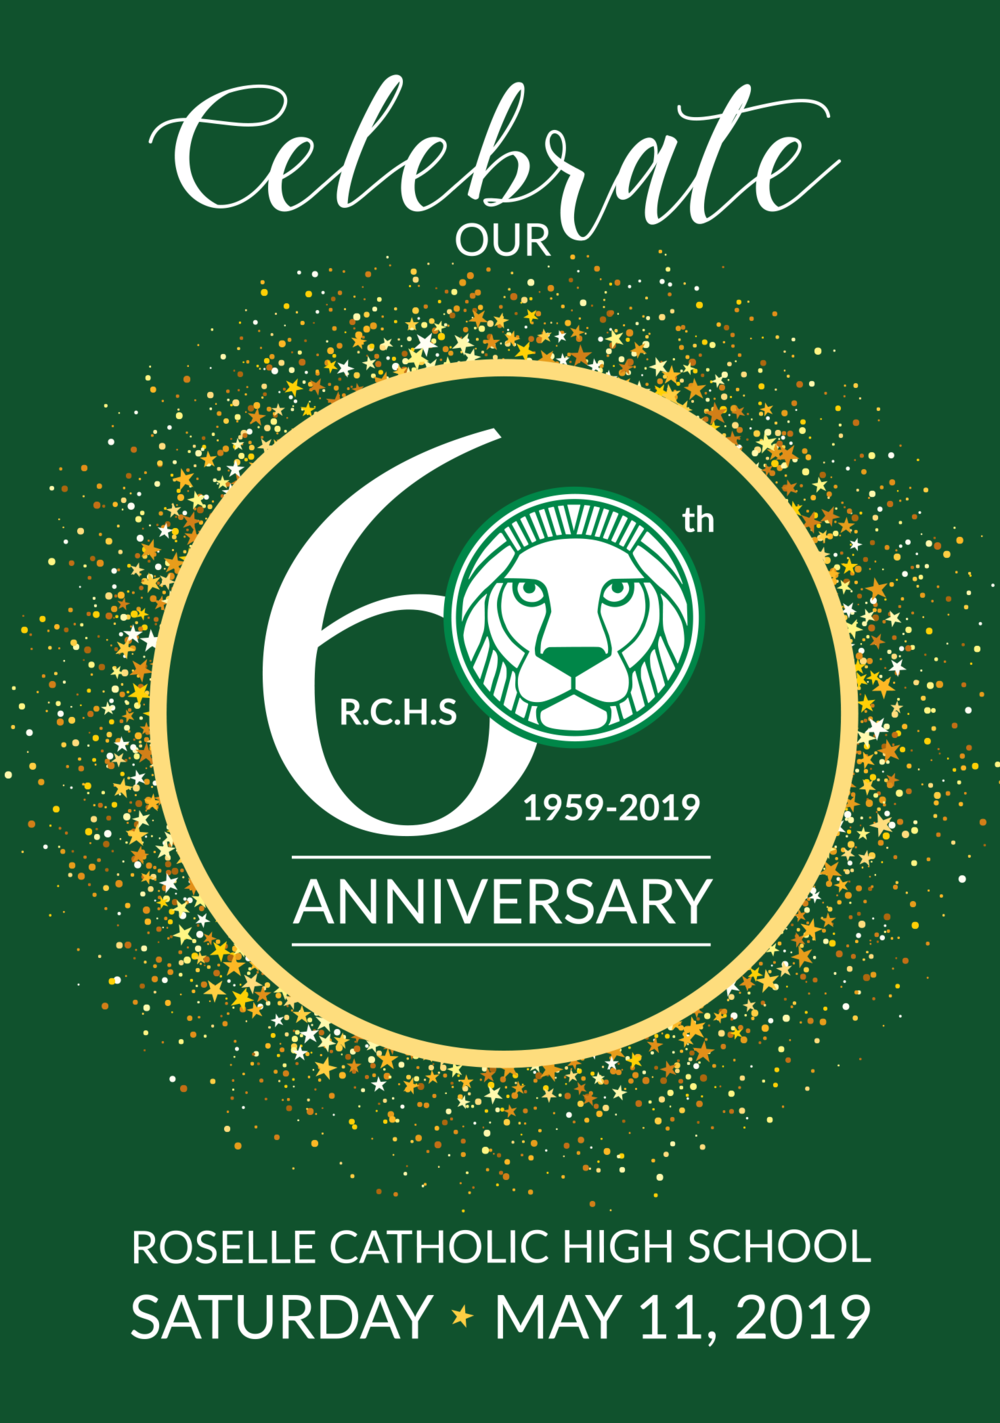 May 11, 2019 at 6pm - Roselle Catholic High SchoolJoin us for an evening of drinks, dinner, live entertainment and a celebration of Roselle Catholic High School.We will reflect on 60 years of greatness and look ahead to a future filled with unlimited possibilities.